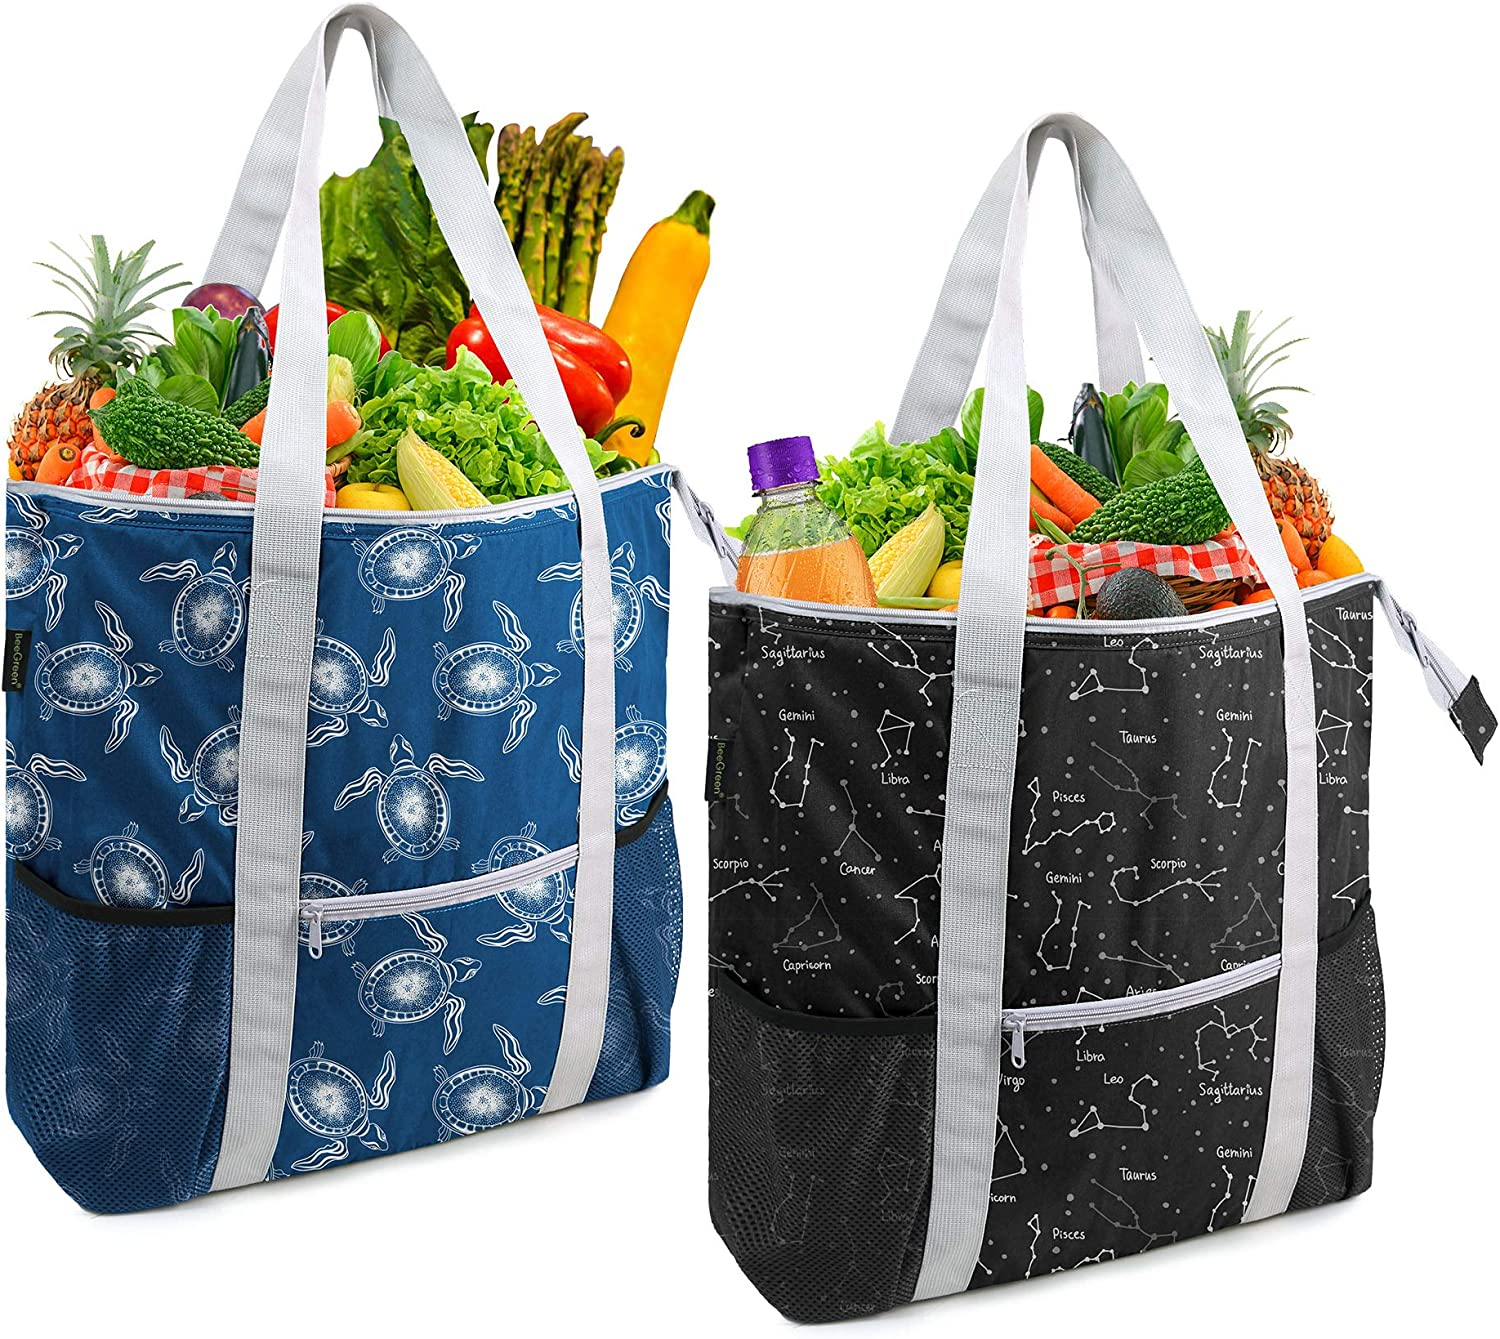 BeeGreen Insulated Bags Set of 2 Cooler Thermal Totes for Cold and Hot Food Transport Durable Reusable Shopping Freezer Baggies with Zippered Top Long Handles Black Navy Blue